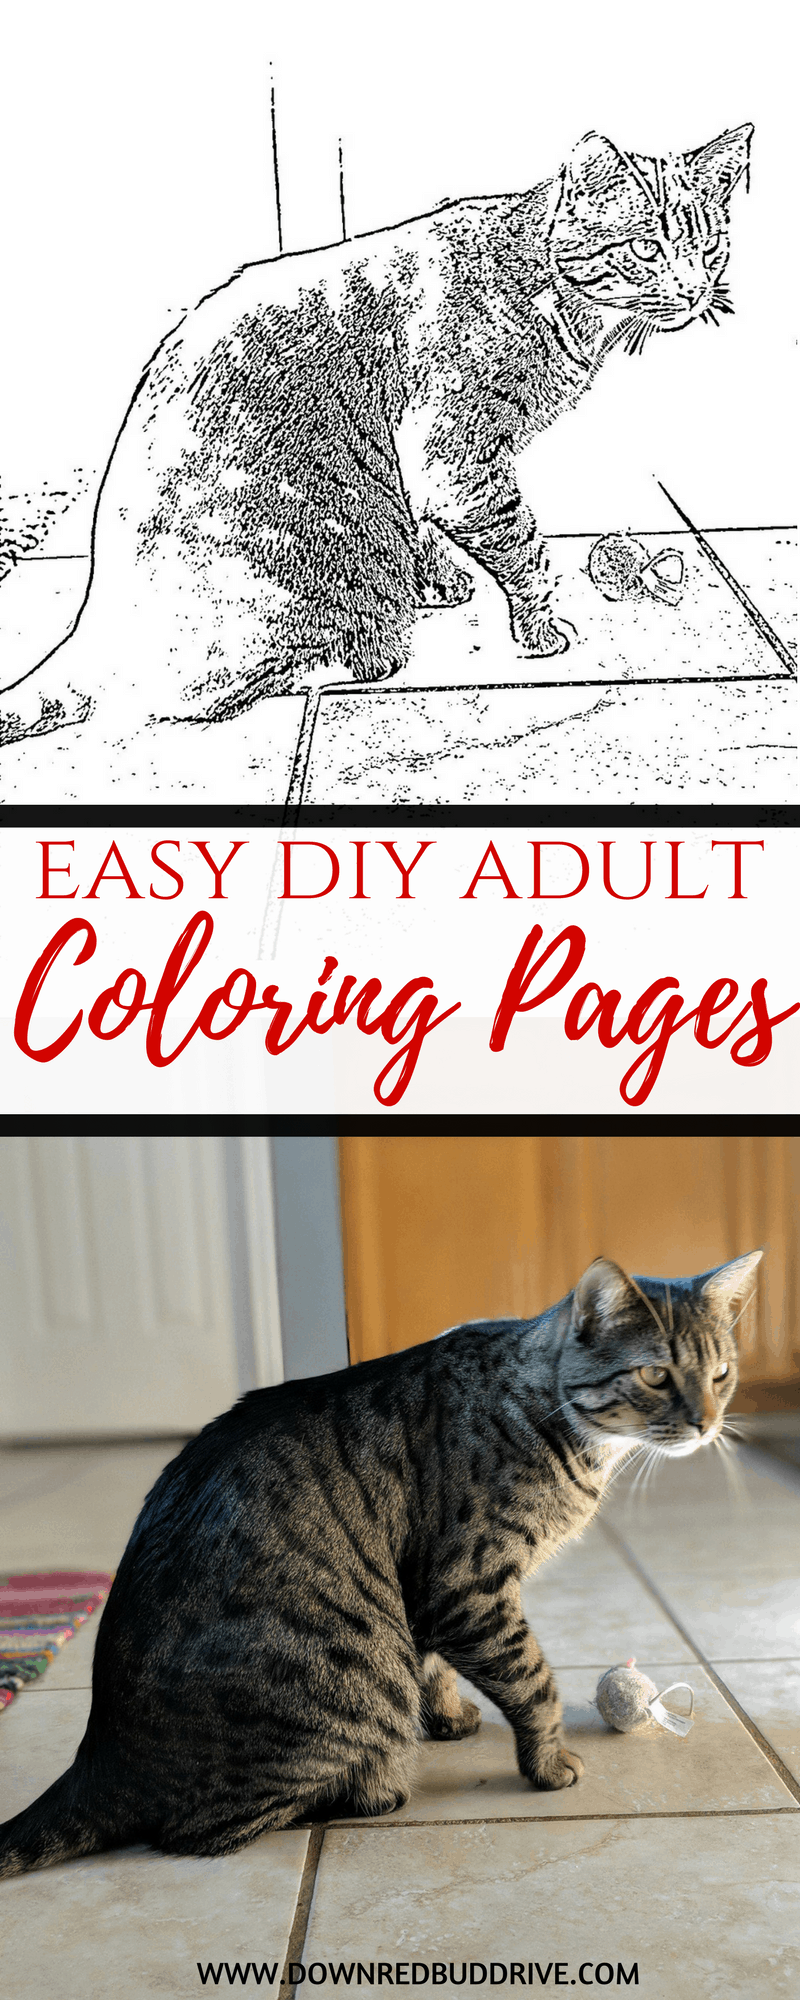 Easy DIY Adult Coloring Pages   Adult Coloring Pages   Printable Coloring Pages   Coloring Pages Free   DIY Coloring Pages   Coloring Pages   #adultcoloringpages #diycoloringpages